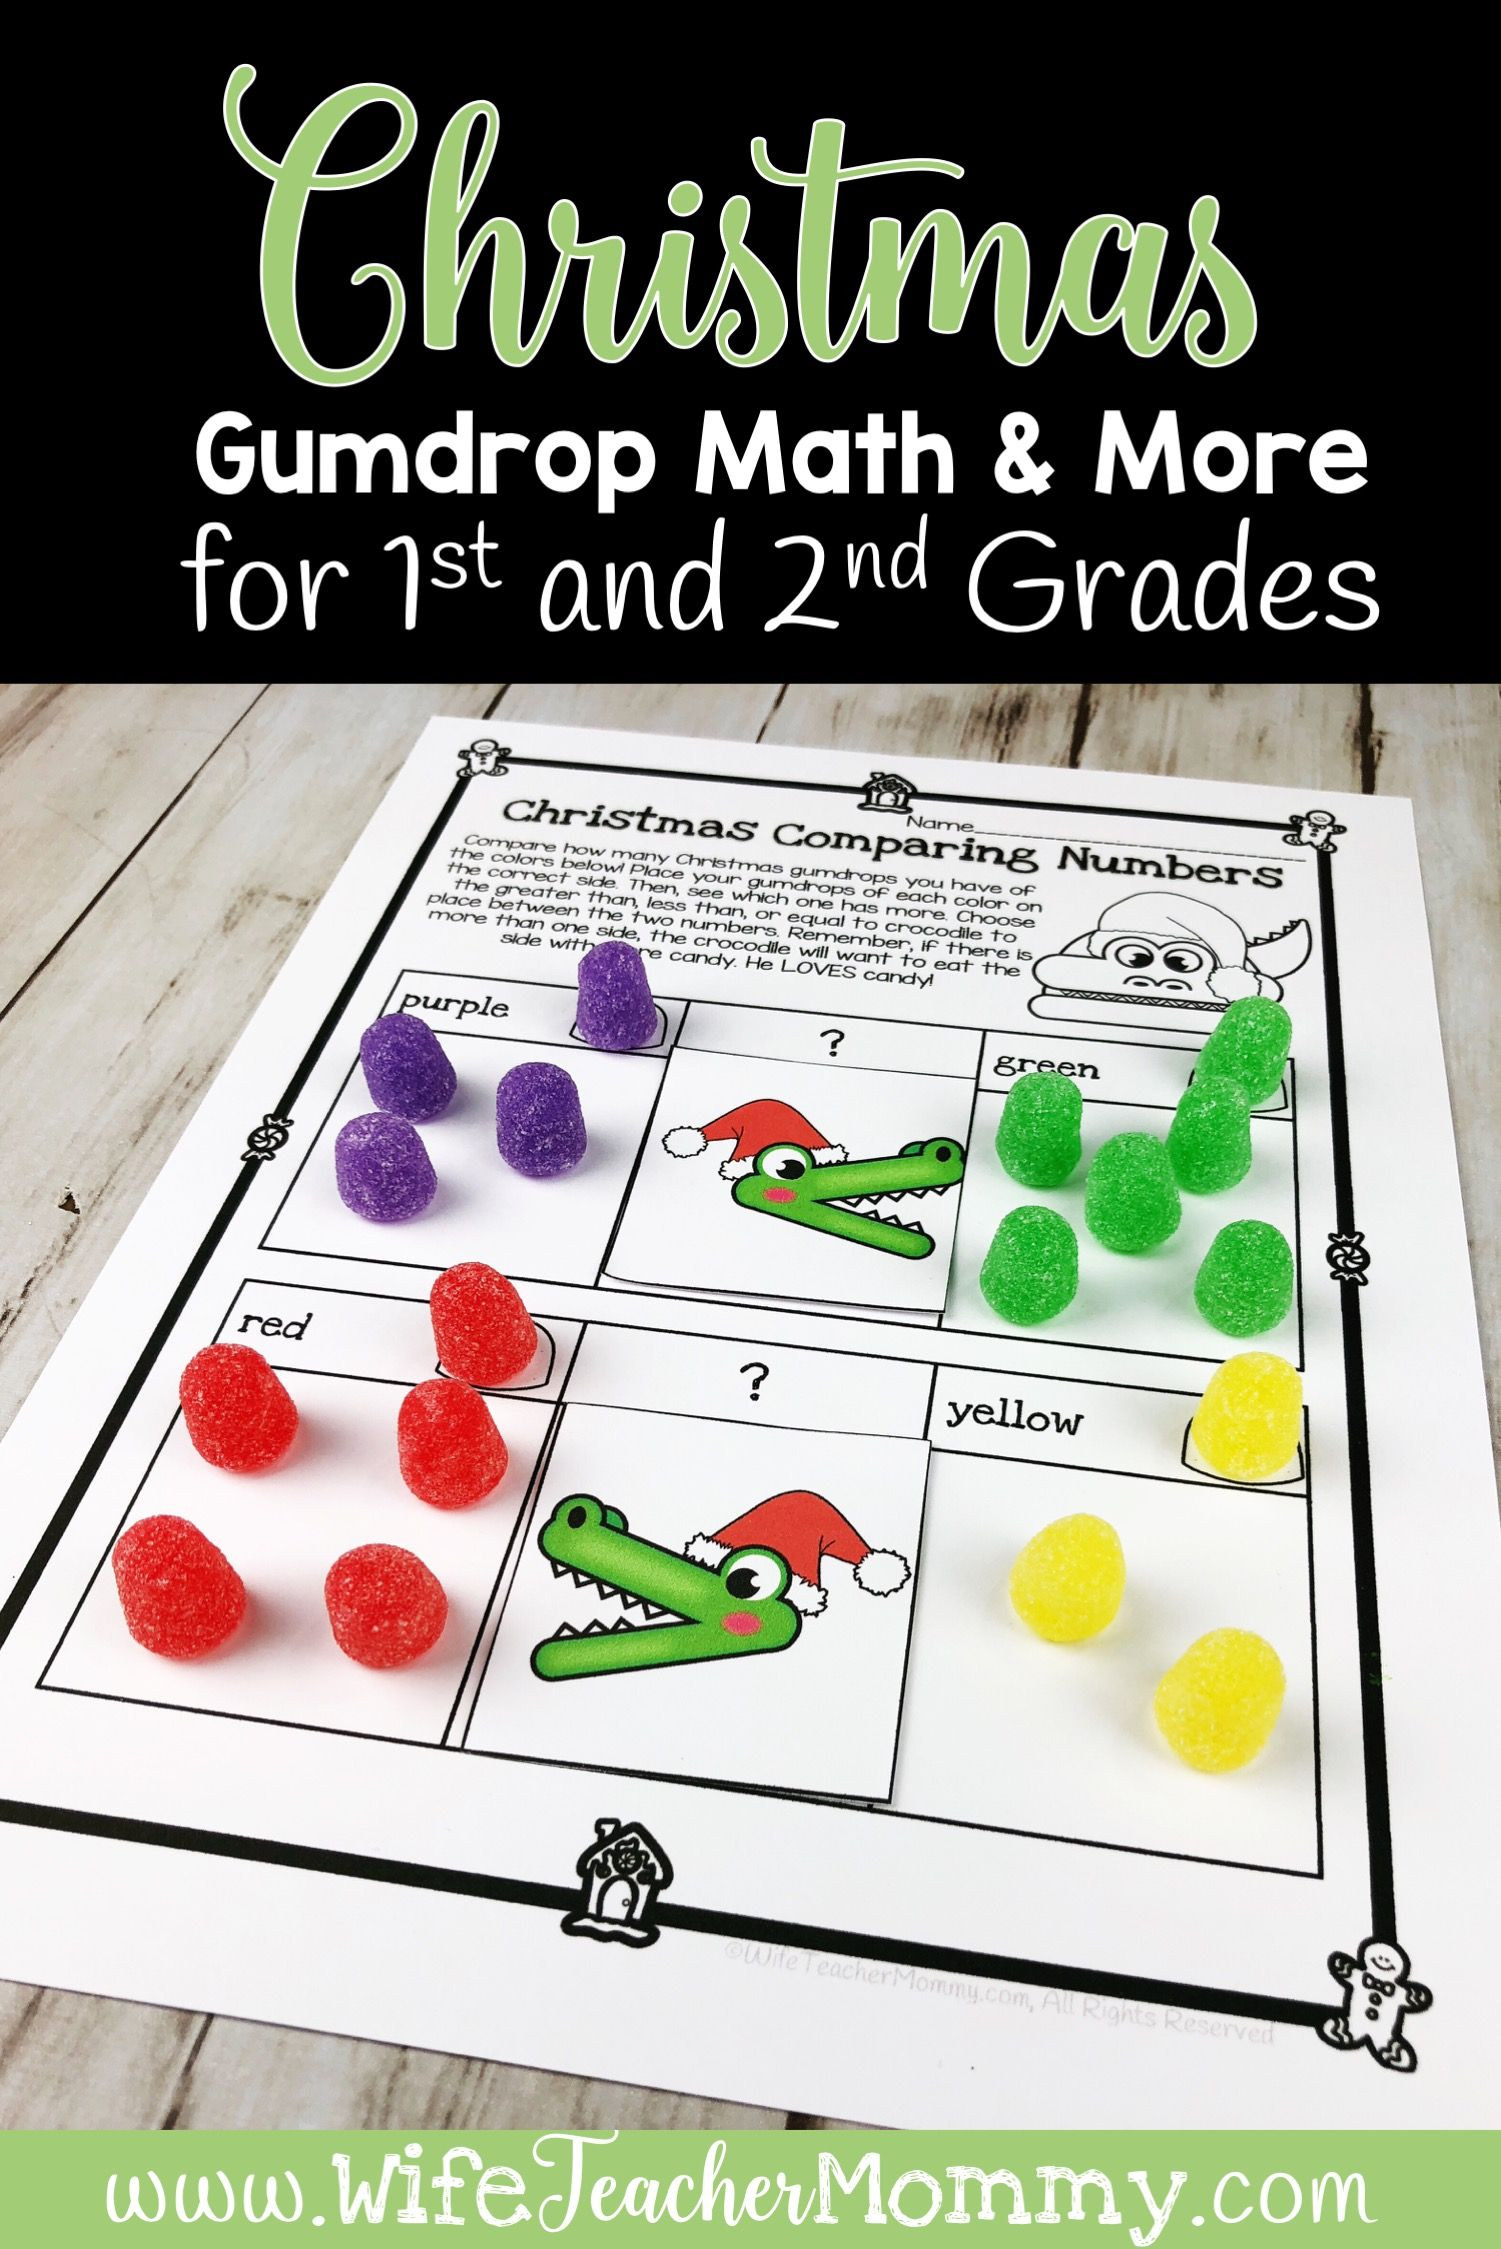 Christmas Gumdrop Math Activities Amp More For 1st And 2nd